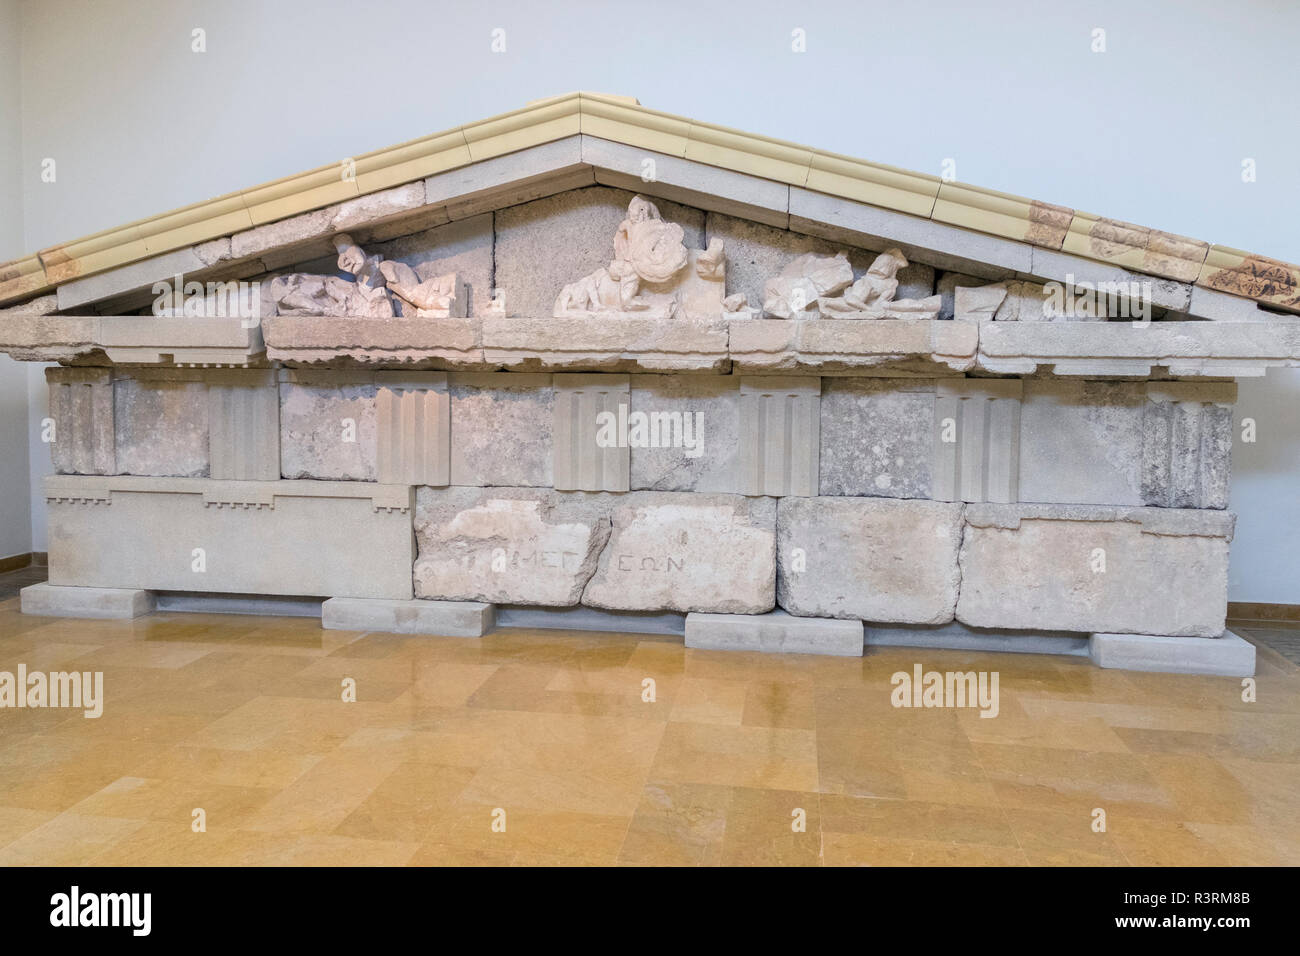 Pediment from the Treasury of the Megarians, Olympia Museum, Olympia, Greece - Stock Image